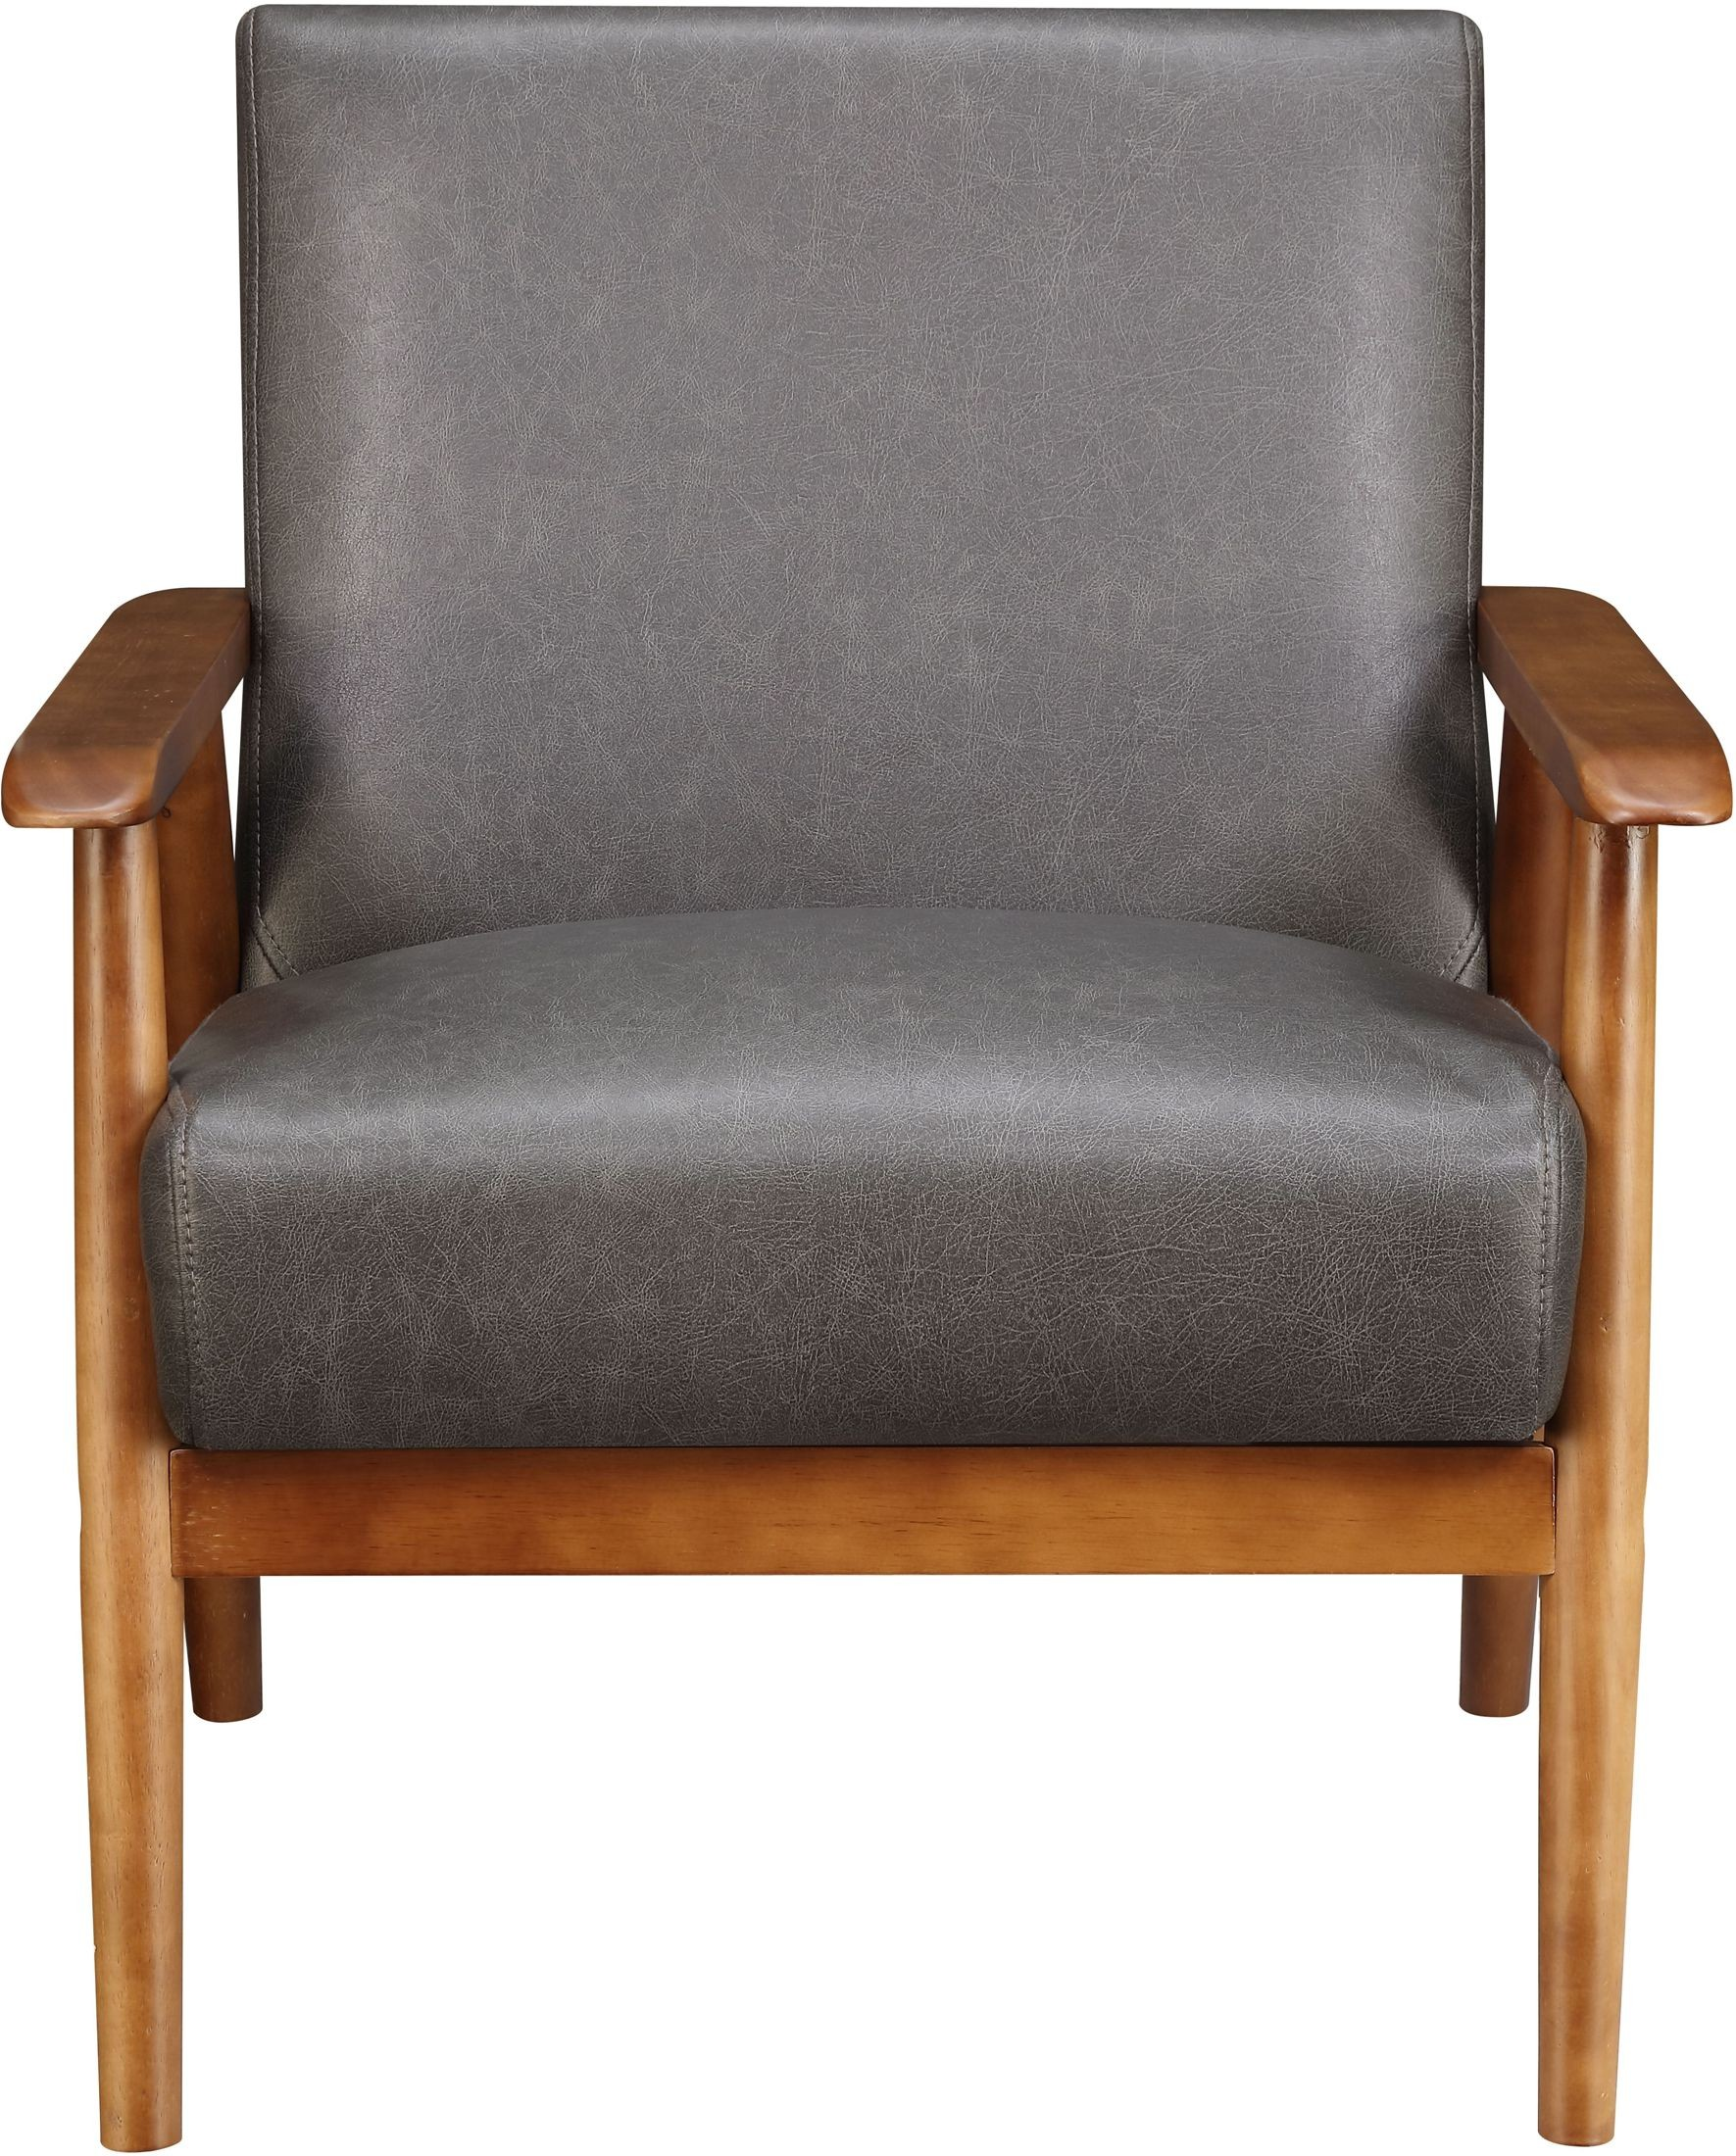 Small Framed Accent Chair For Bedroom: Lummus Steel Wood Frame Upholstered Accent Chair